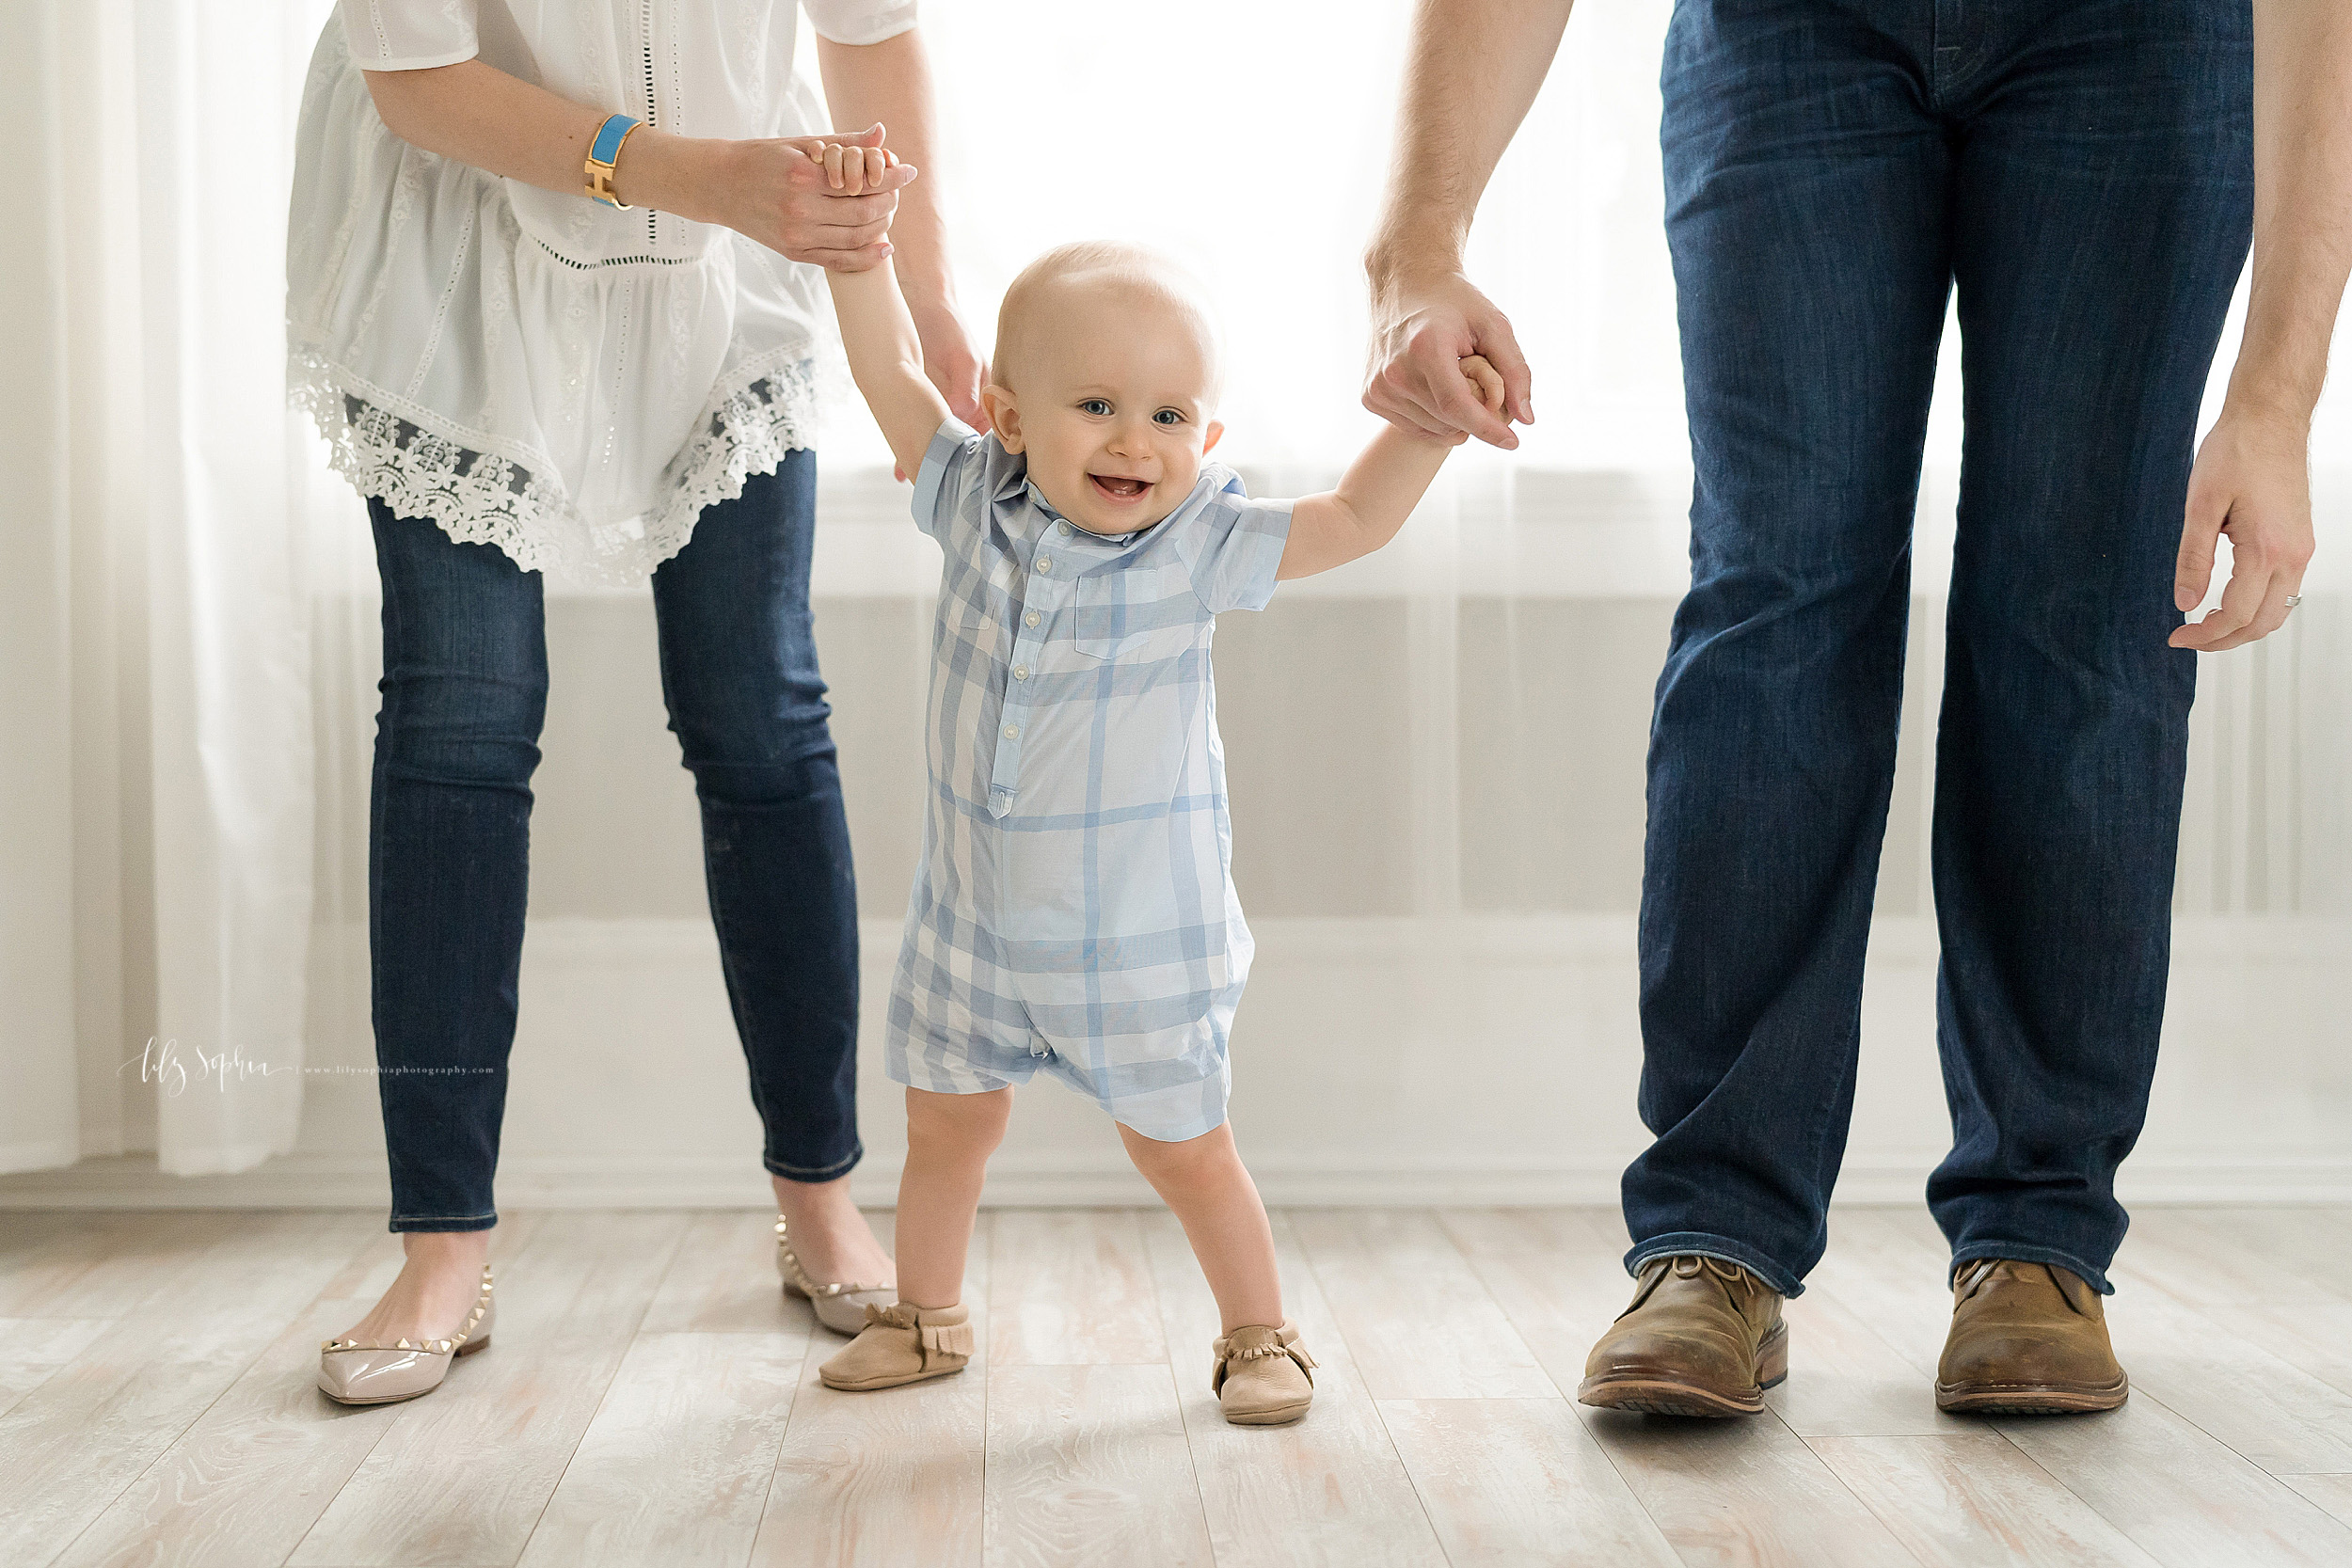 Photo of Mom and Dad helping their smiling one year old walk in an Atlanta studio.  Mom is holding the one year old's right hand and Dad is holding the one year old's left hand as they help him take his first steps.